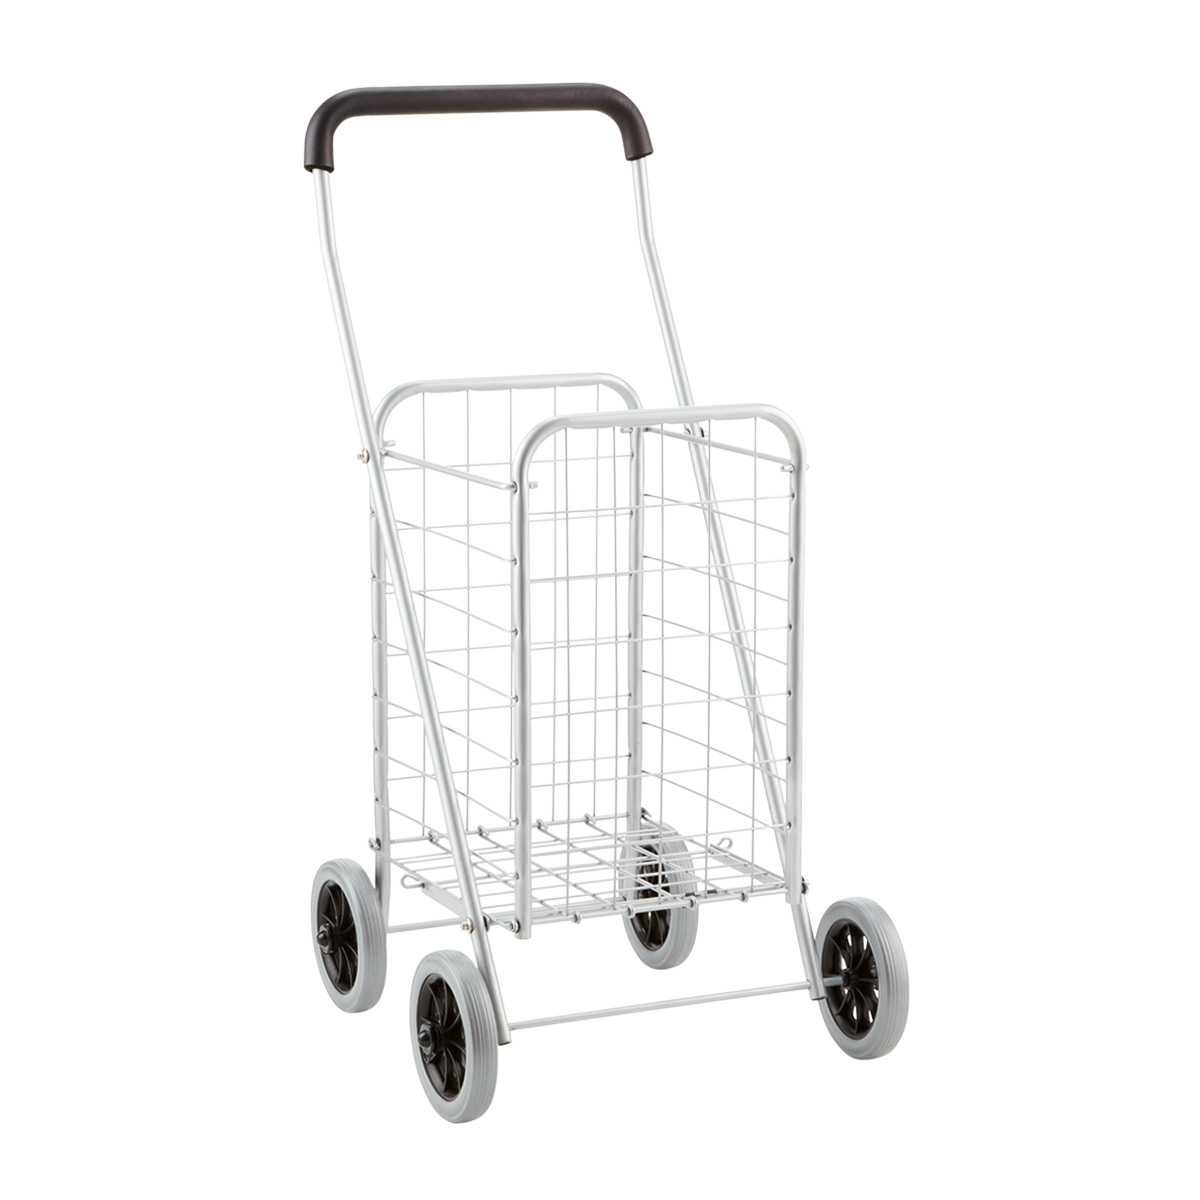 personal shopping cart steel shopping cart the container storesteel shopping cart \u0026 liner